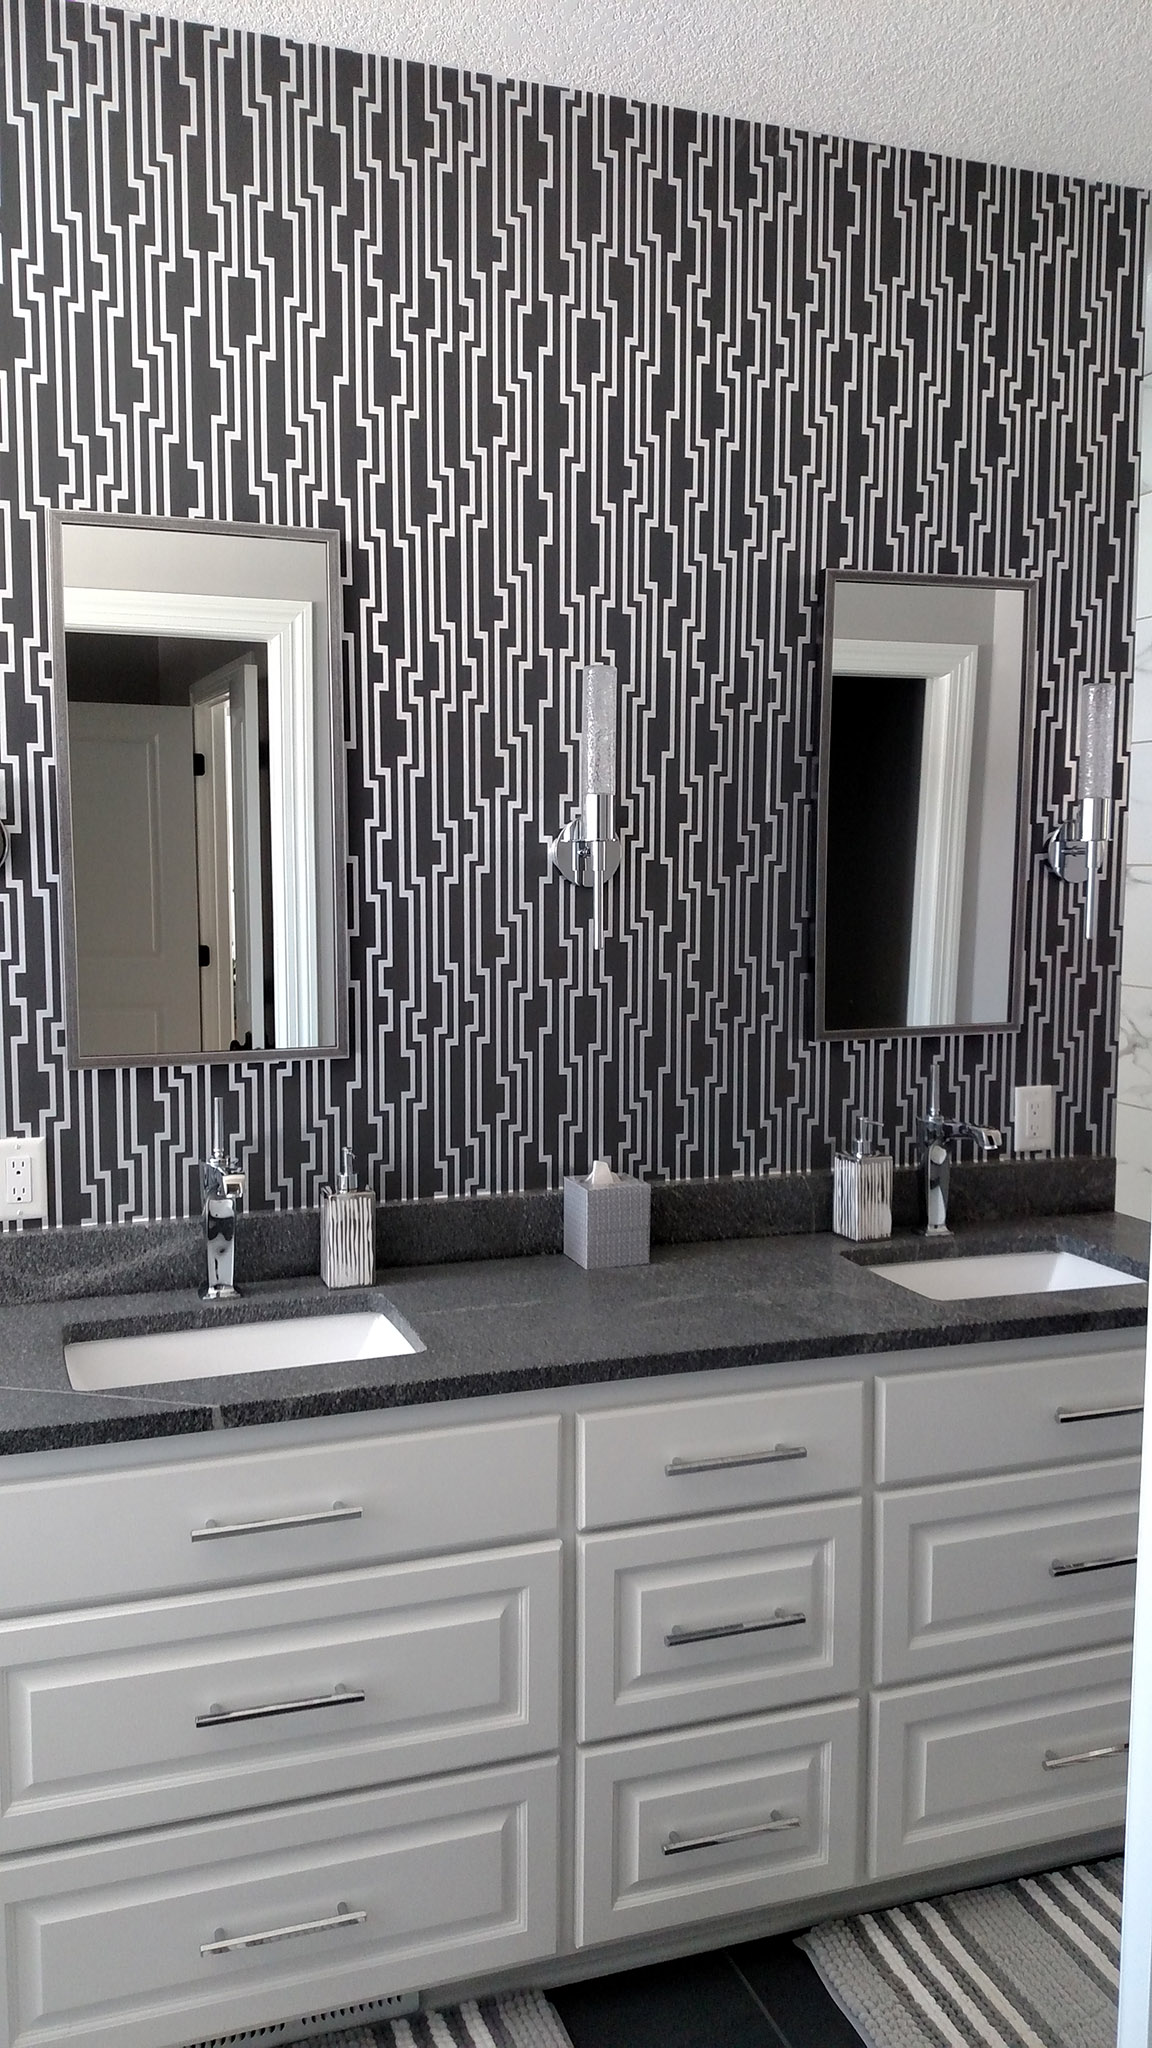 Contemporary master bath white vanity with gray marble tops and backsplash, square undermount sinks and patterned wallpaper